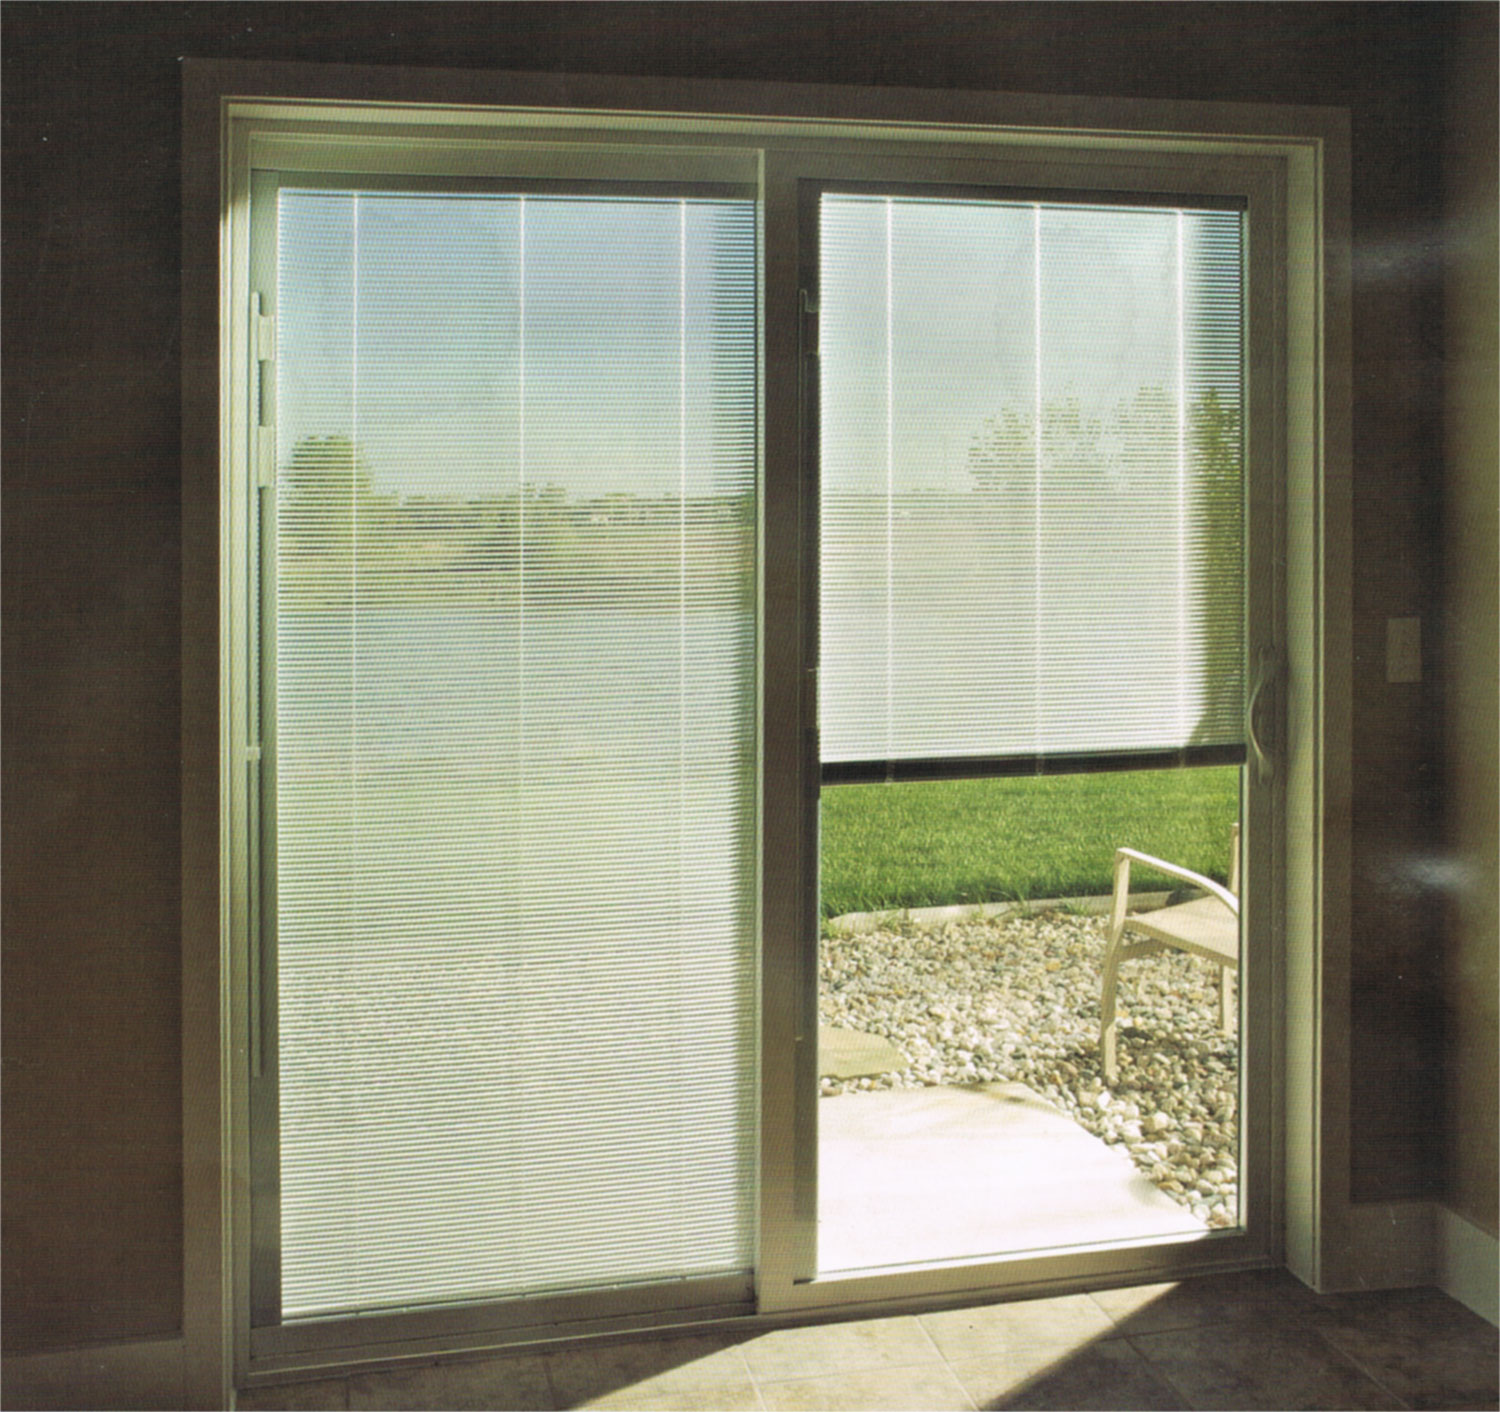 Patio Doors Sliding: Patio Doors Toronto, Installation